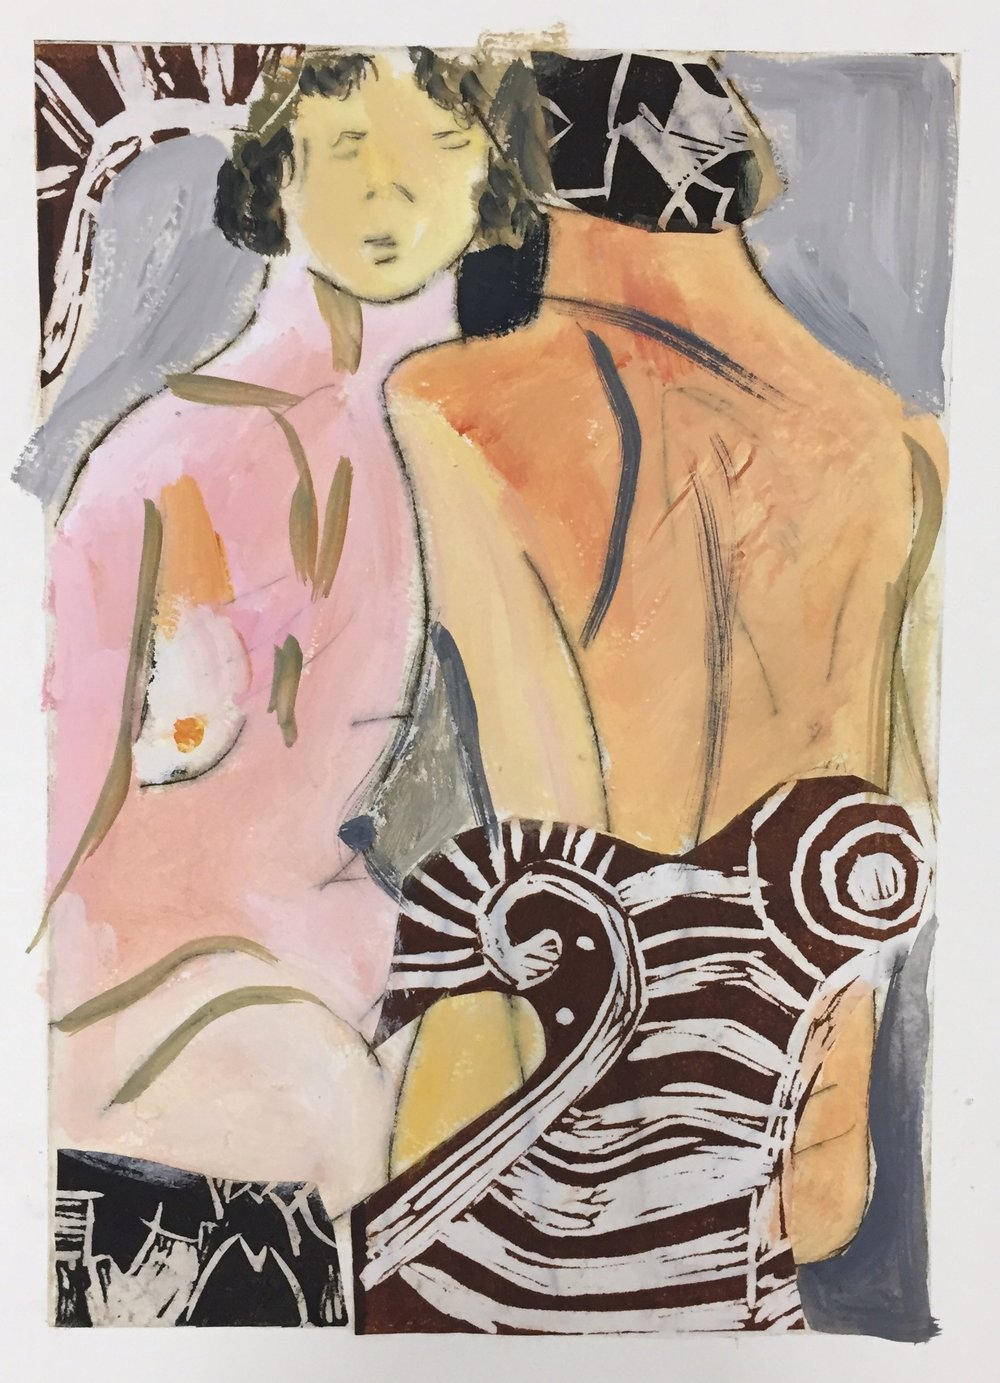 Jane Collins Nudes 32x23cm (image size) drypoint, gouache & lino print collage on paper VE.jpg